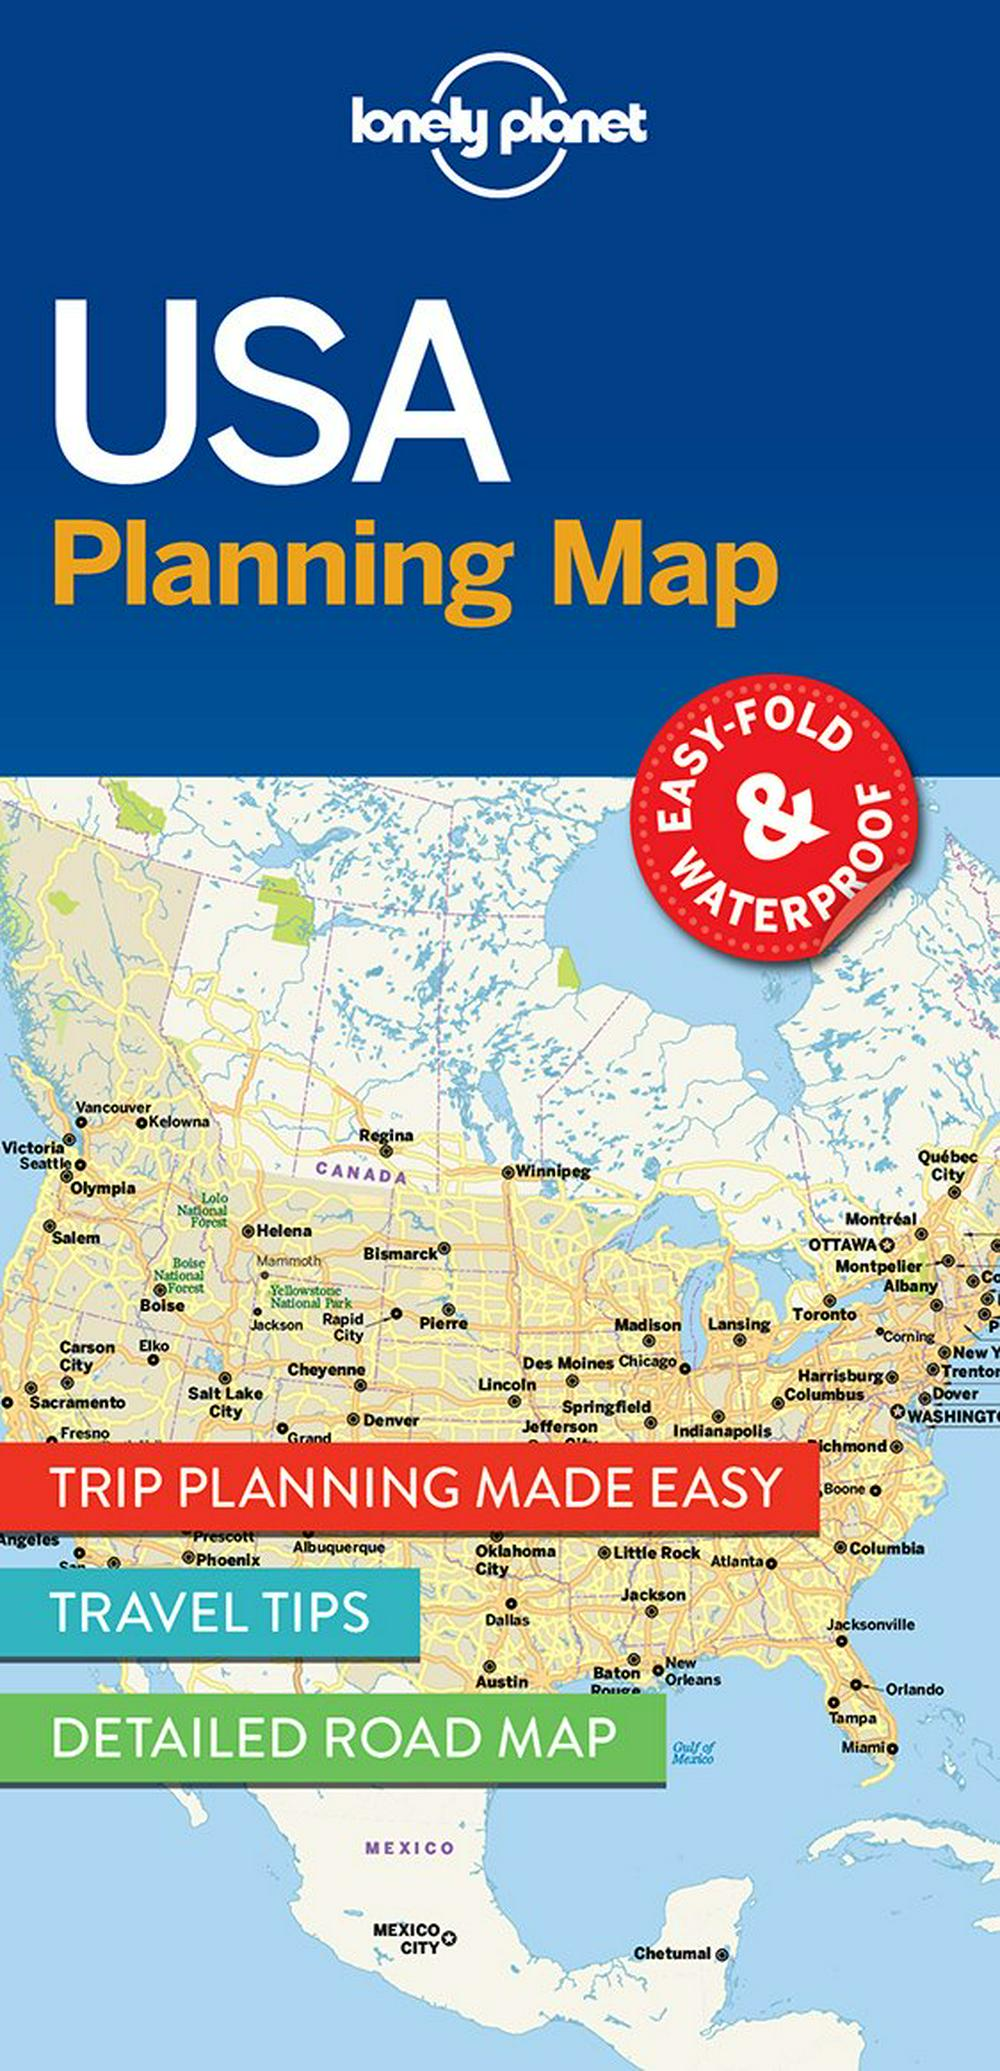 Lonely Planet USA Planning MapTravel Guide by Lonely Planet, ISBN: 9781786579096